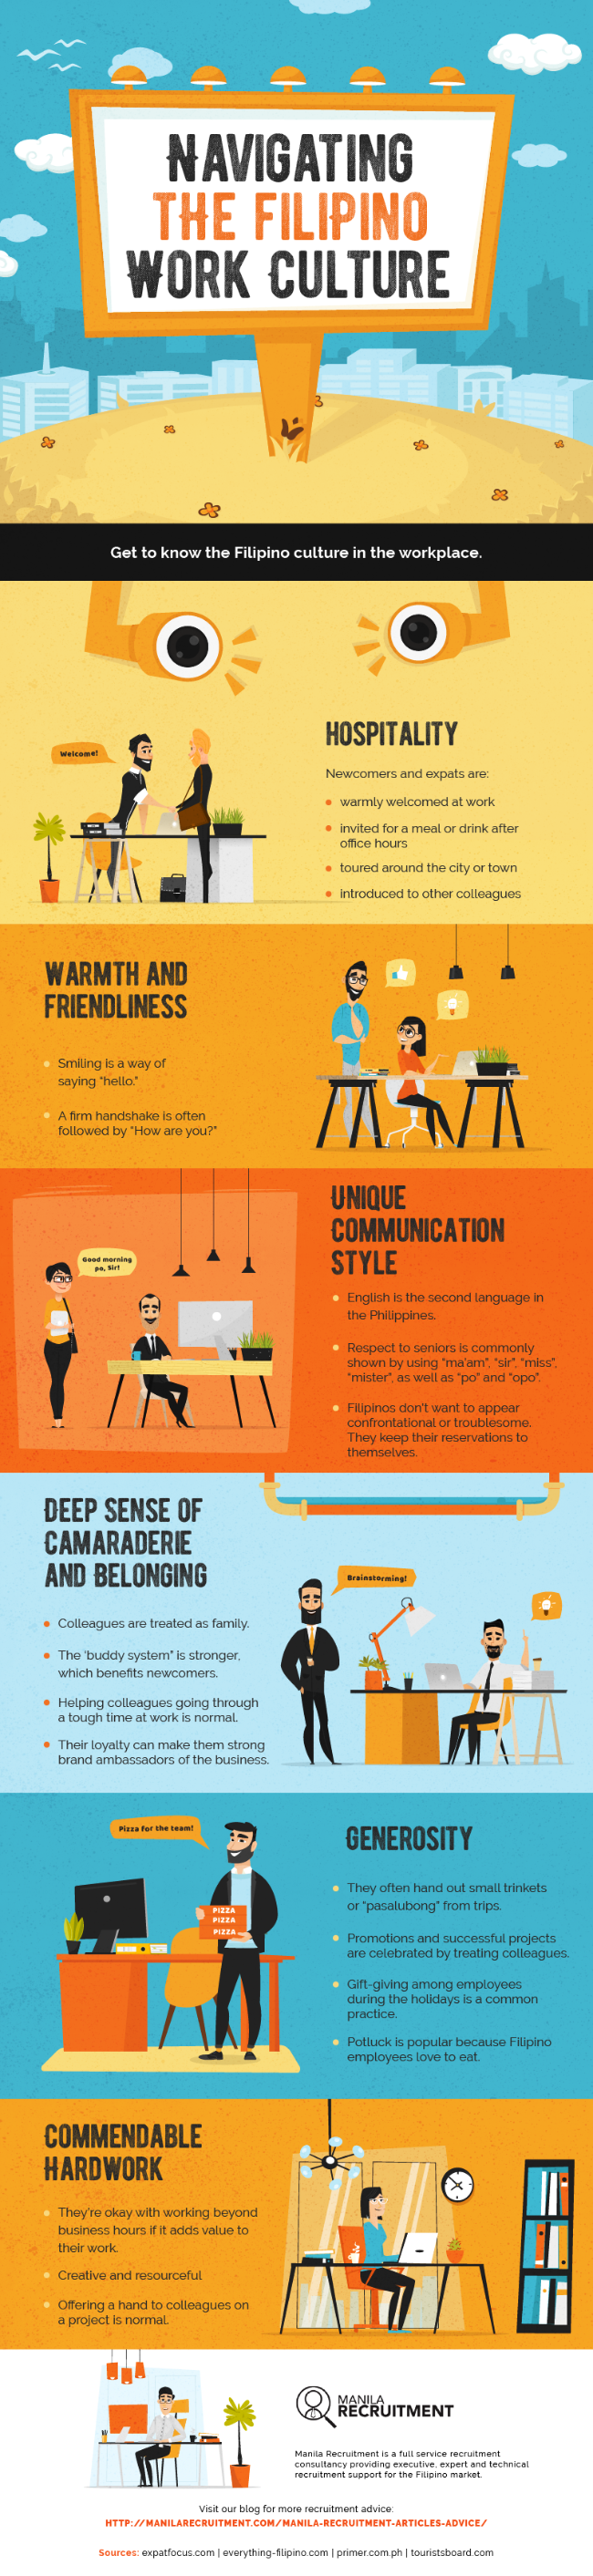 Navigating The Filipino Work Culture Infographic